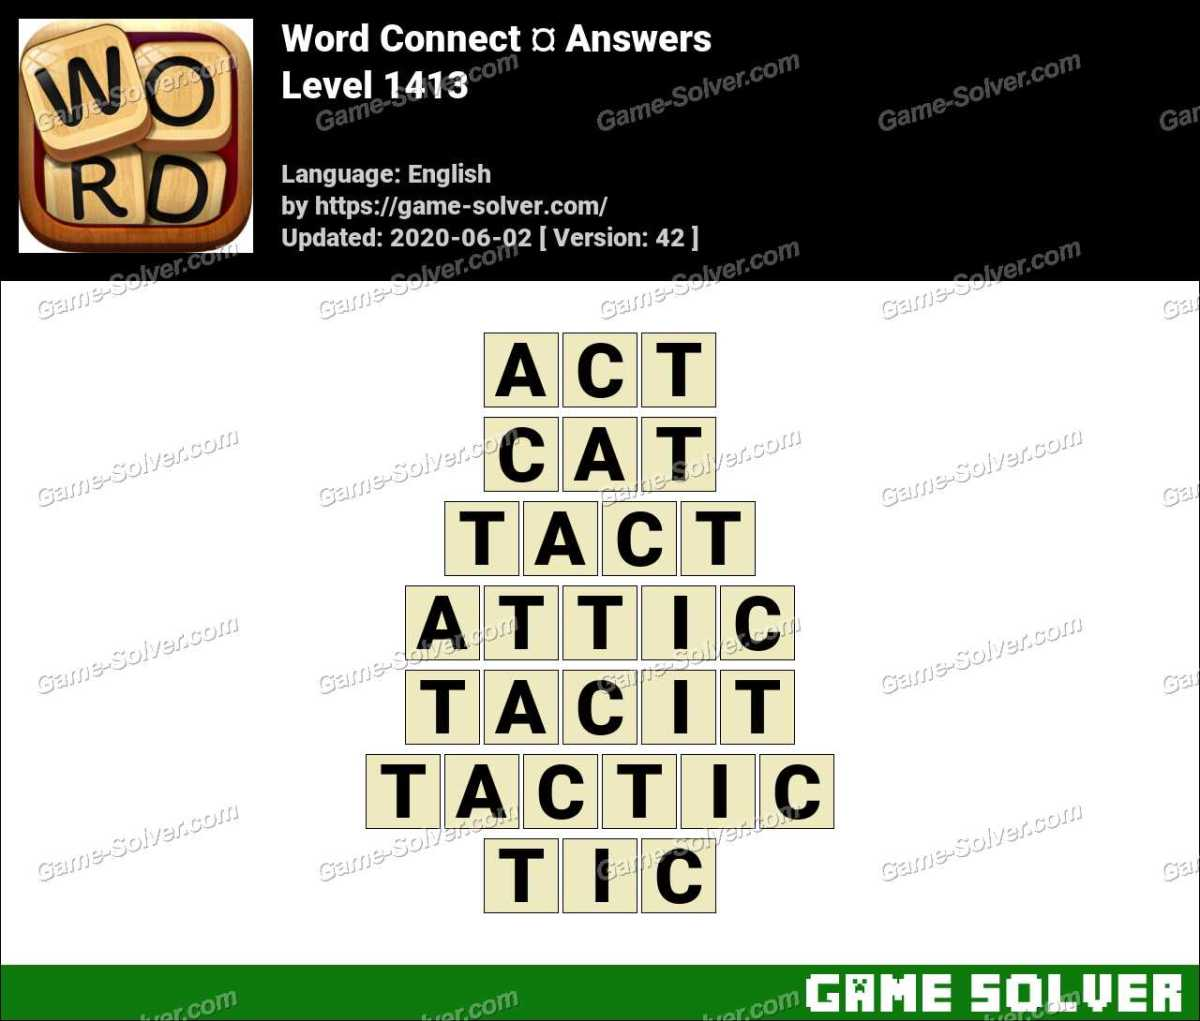 Word Connect Level 1413 Answers